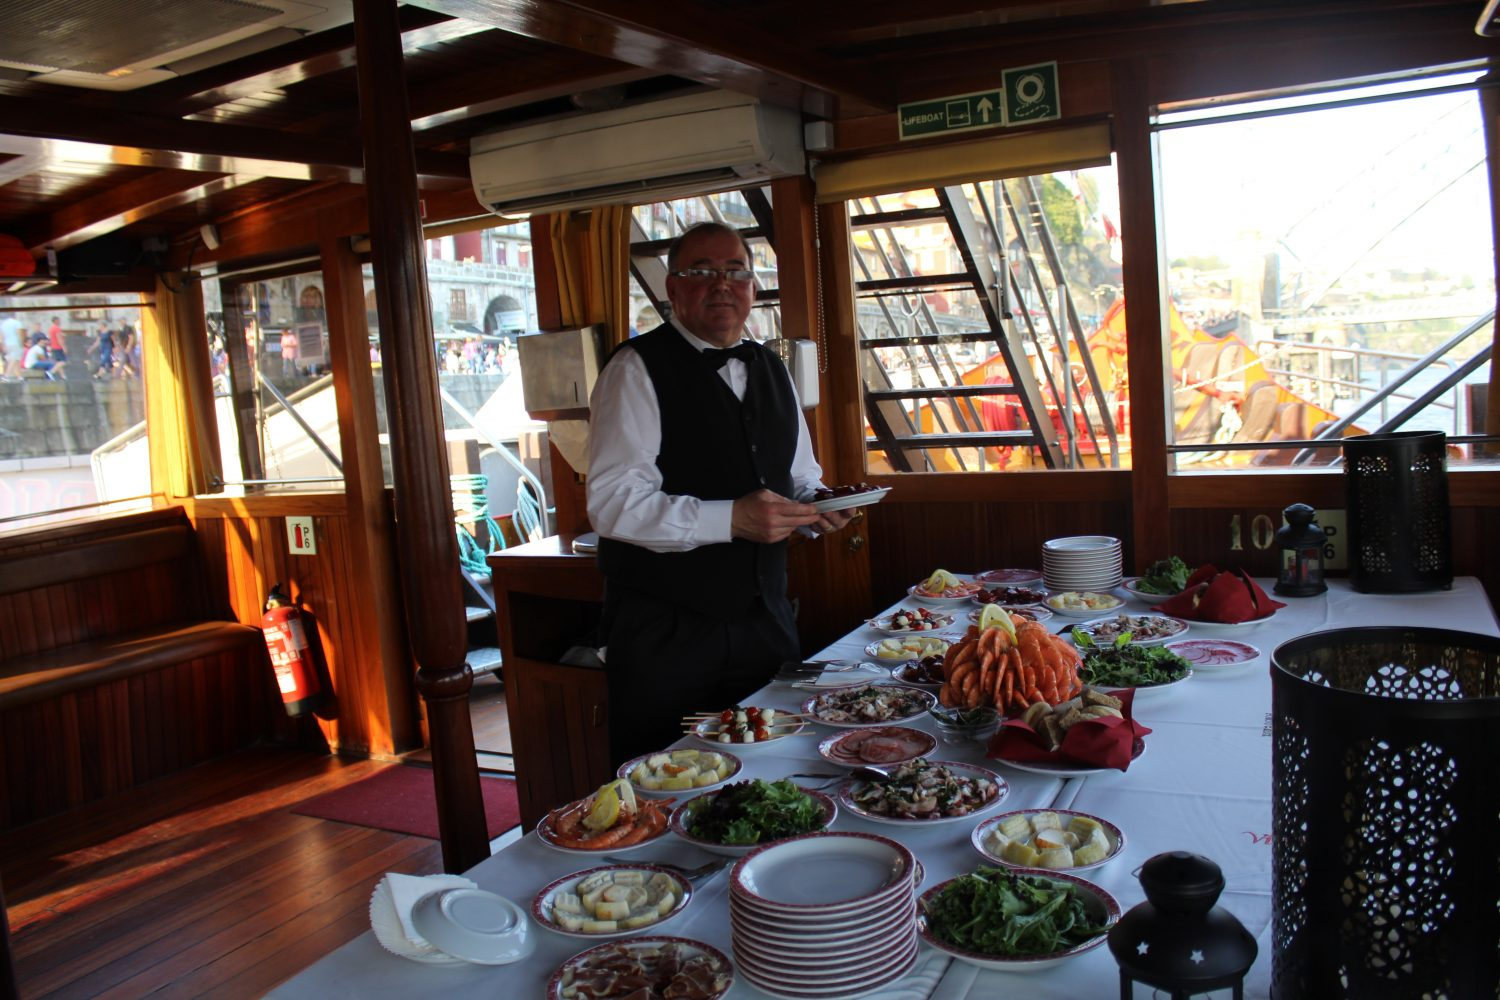 Waiter putting appetizers in Douro cruise with lunch or dinner on board